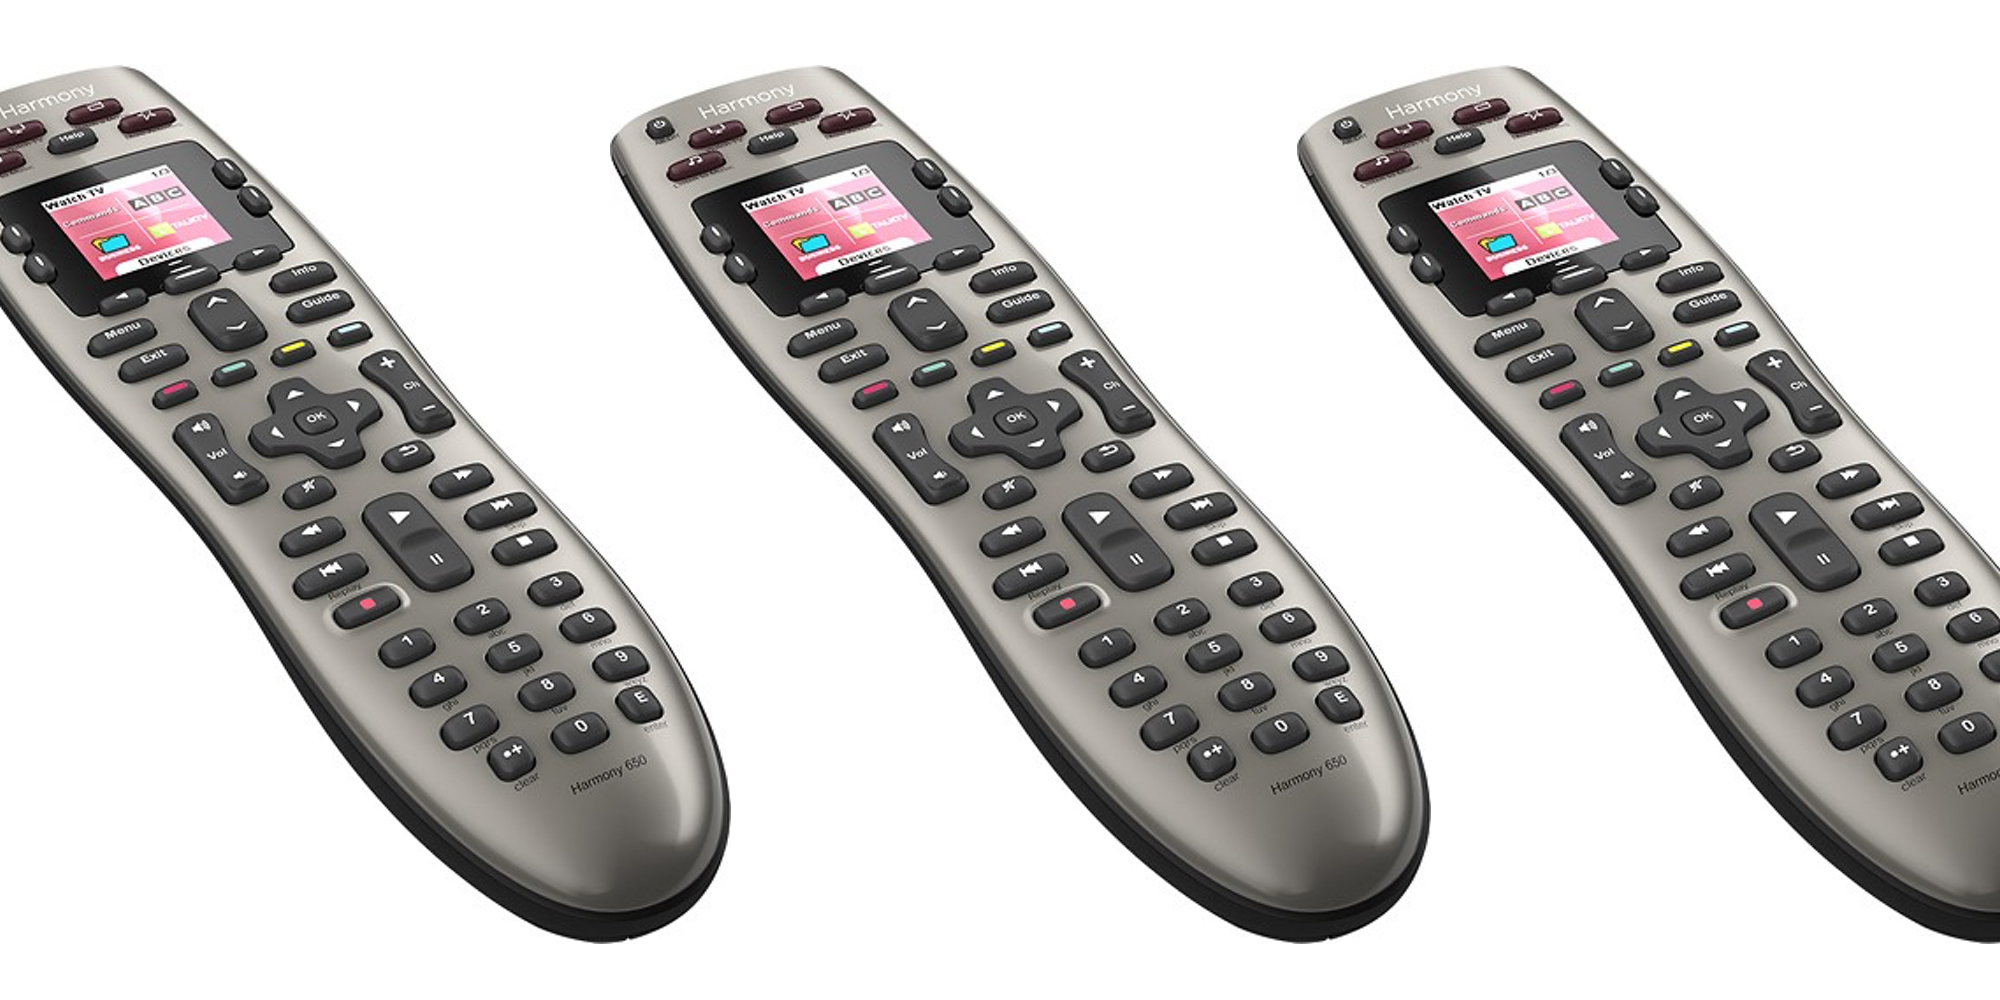 Consolidate your remotes into one with the Logitech Harmony for $30 (25% off)